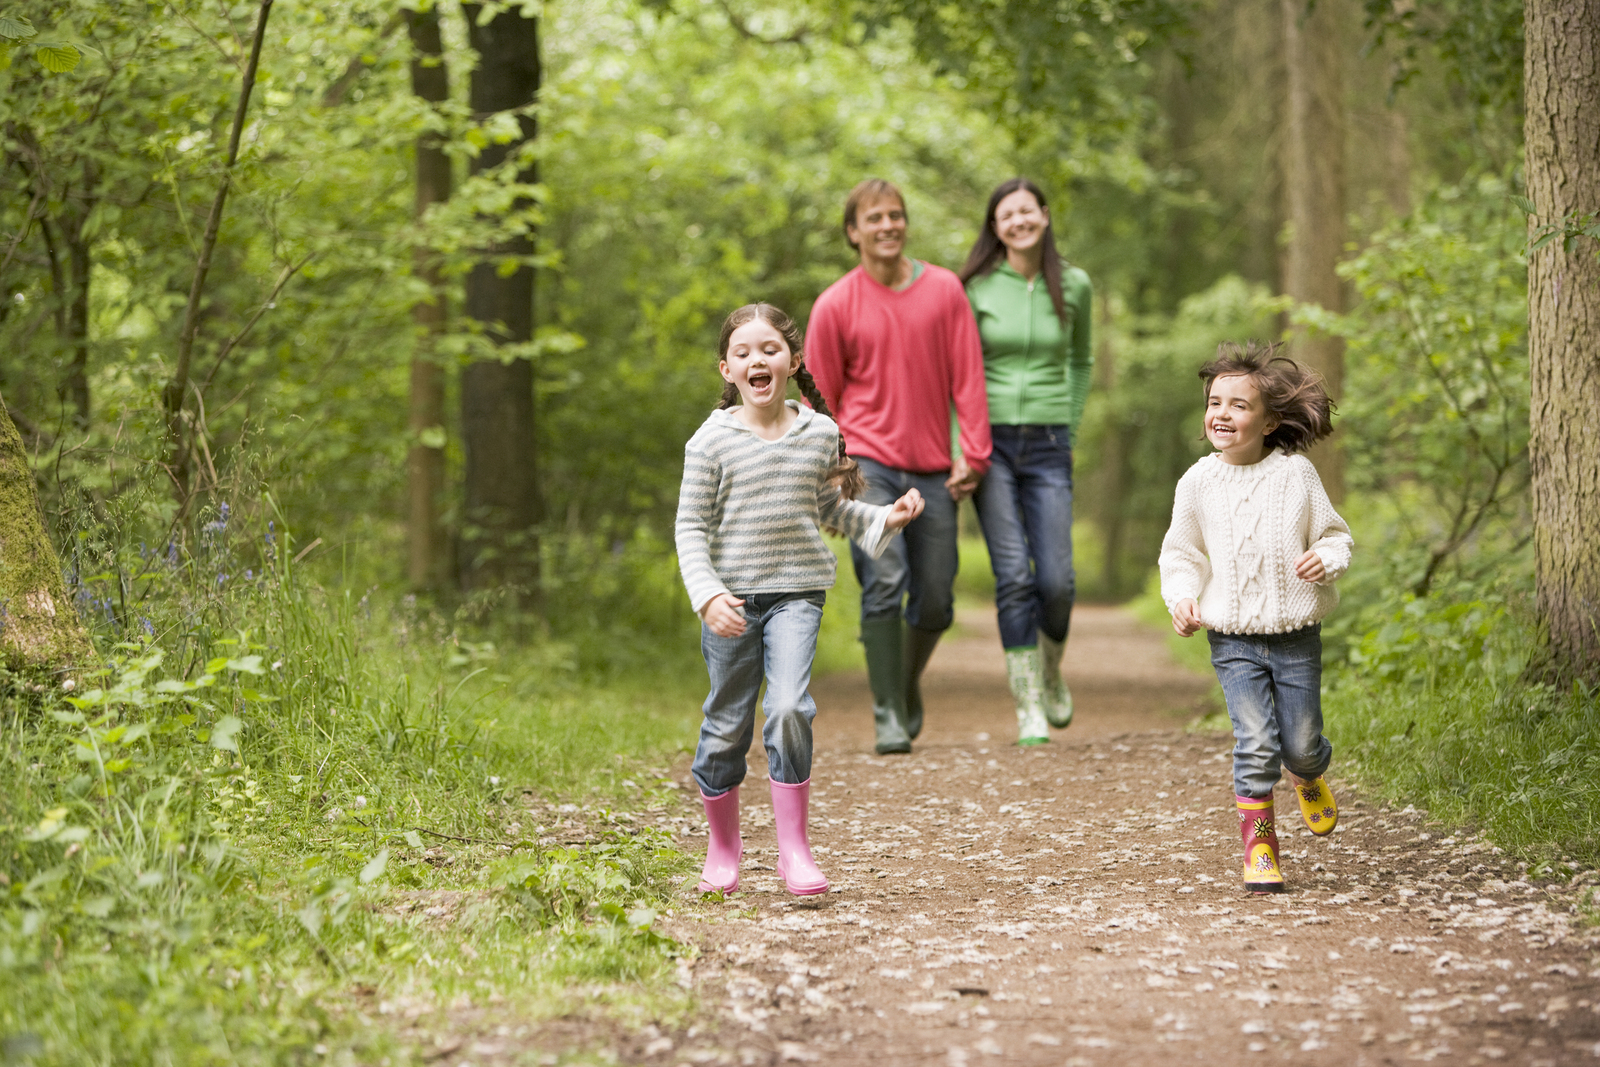 Lavage-image-family-walking-in-woods